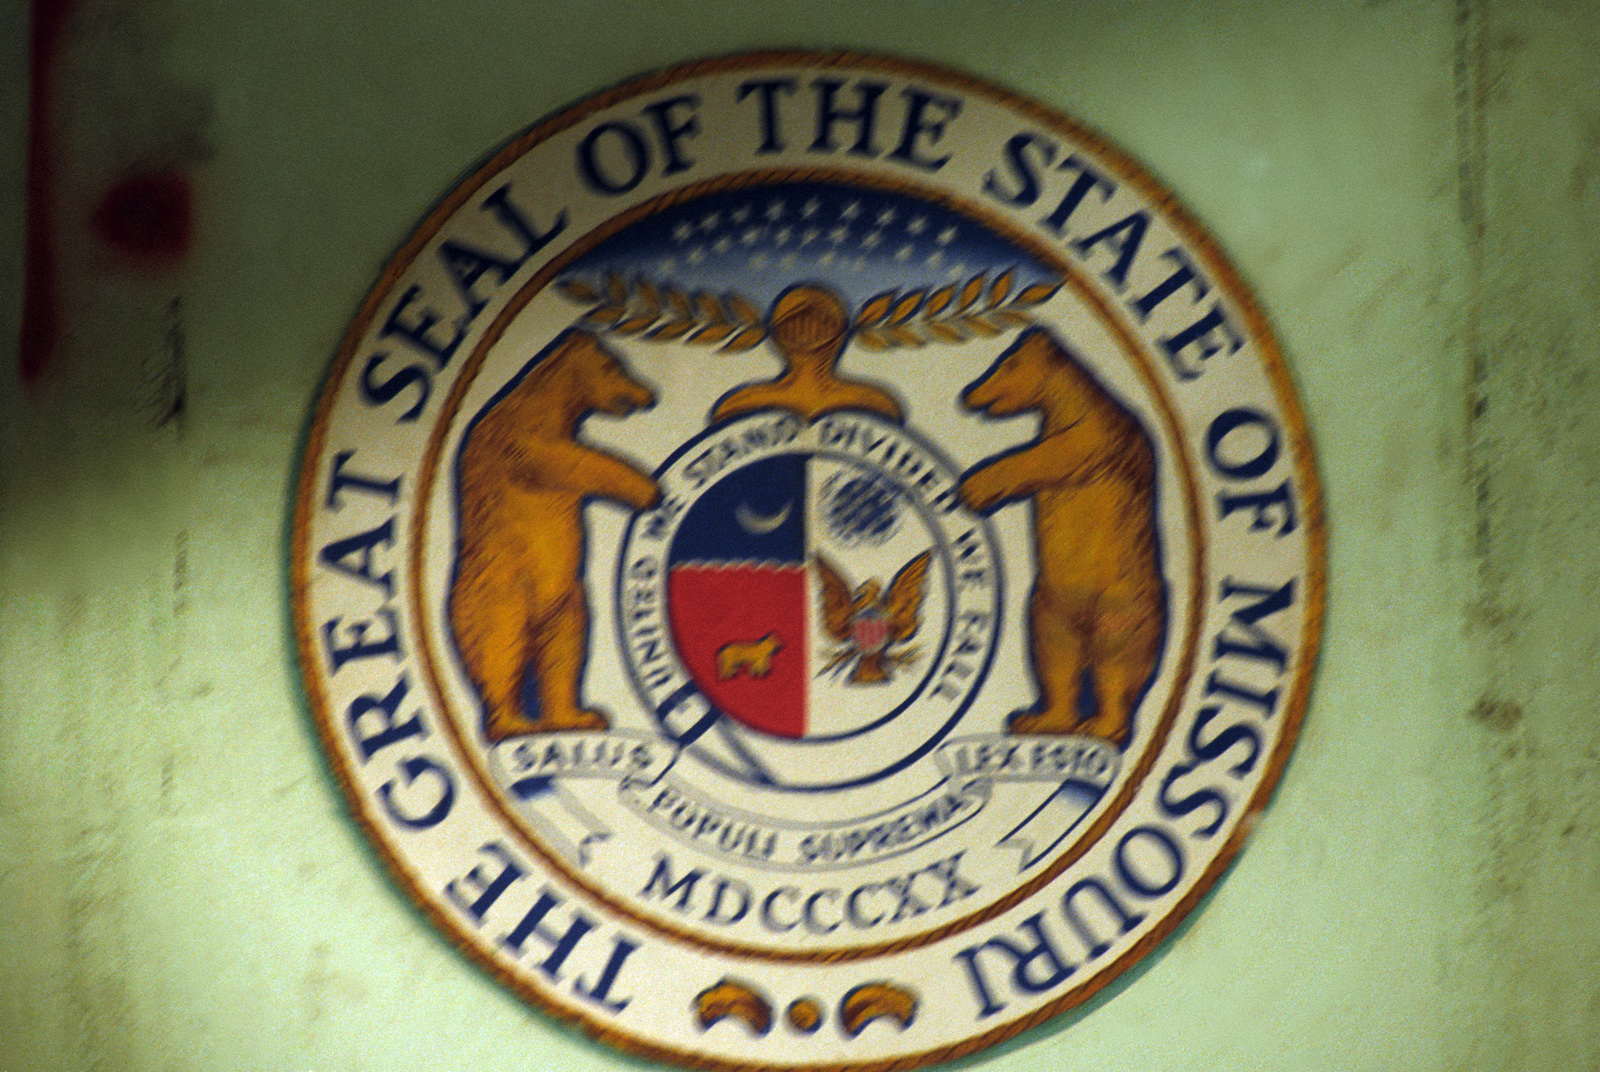 The seal of the state of Missouri aboard the battleship USS MISSOURI (BB 63). The ship is undergoing reactivation and modernization. (SUBSTANDARD)